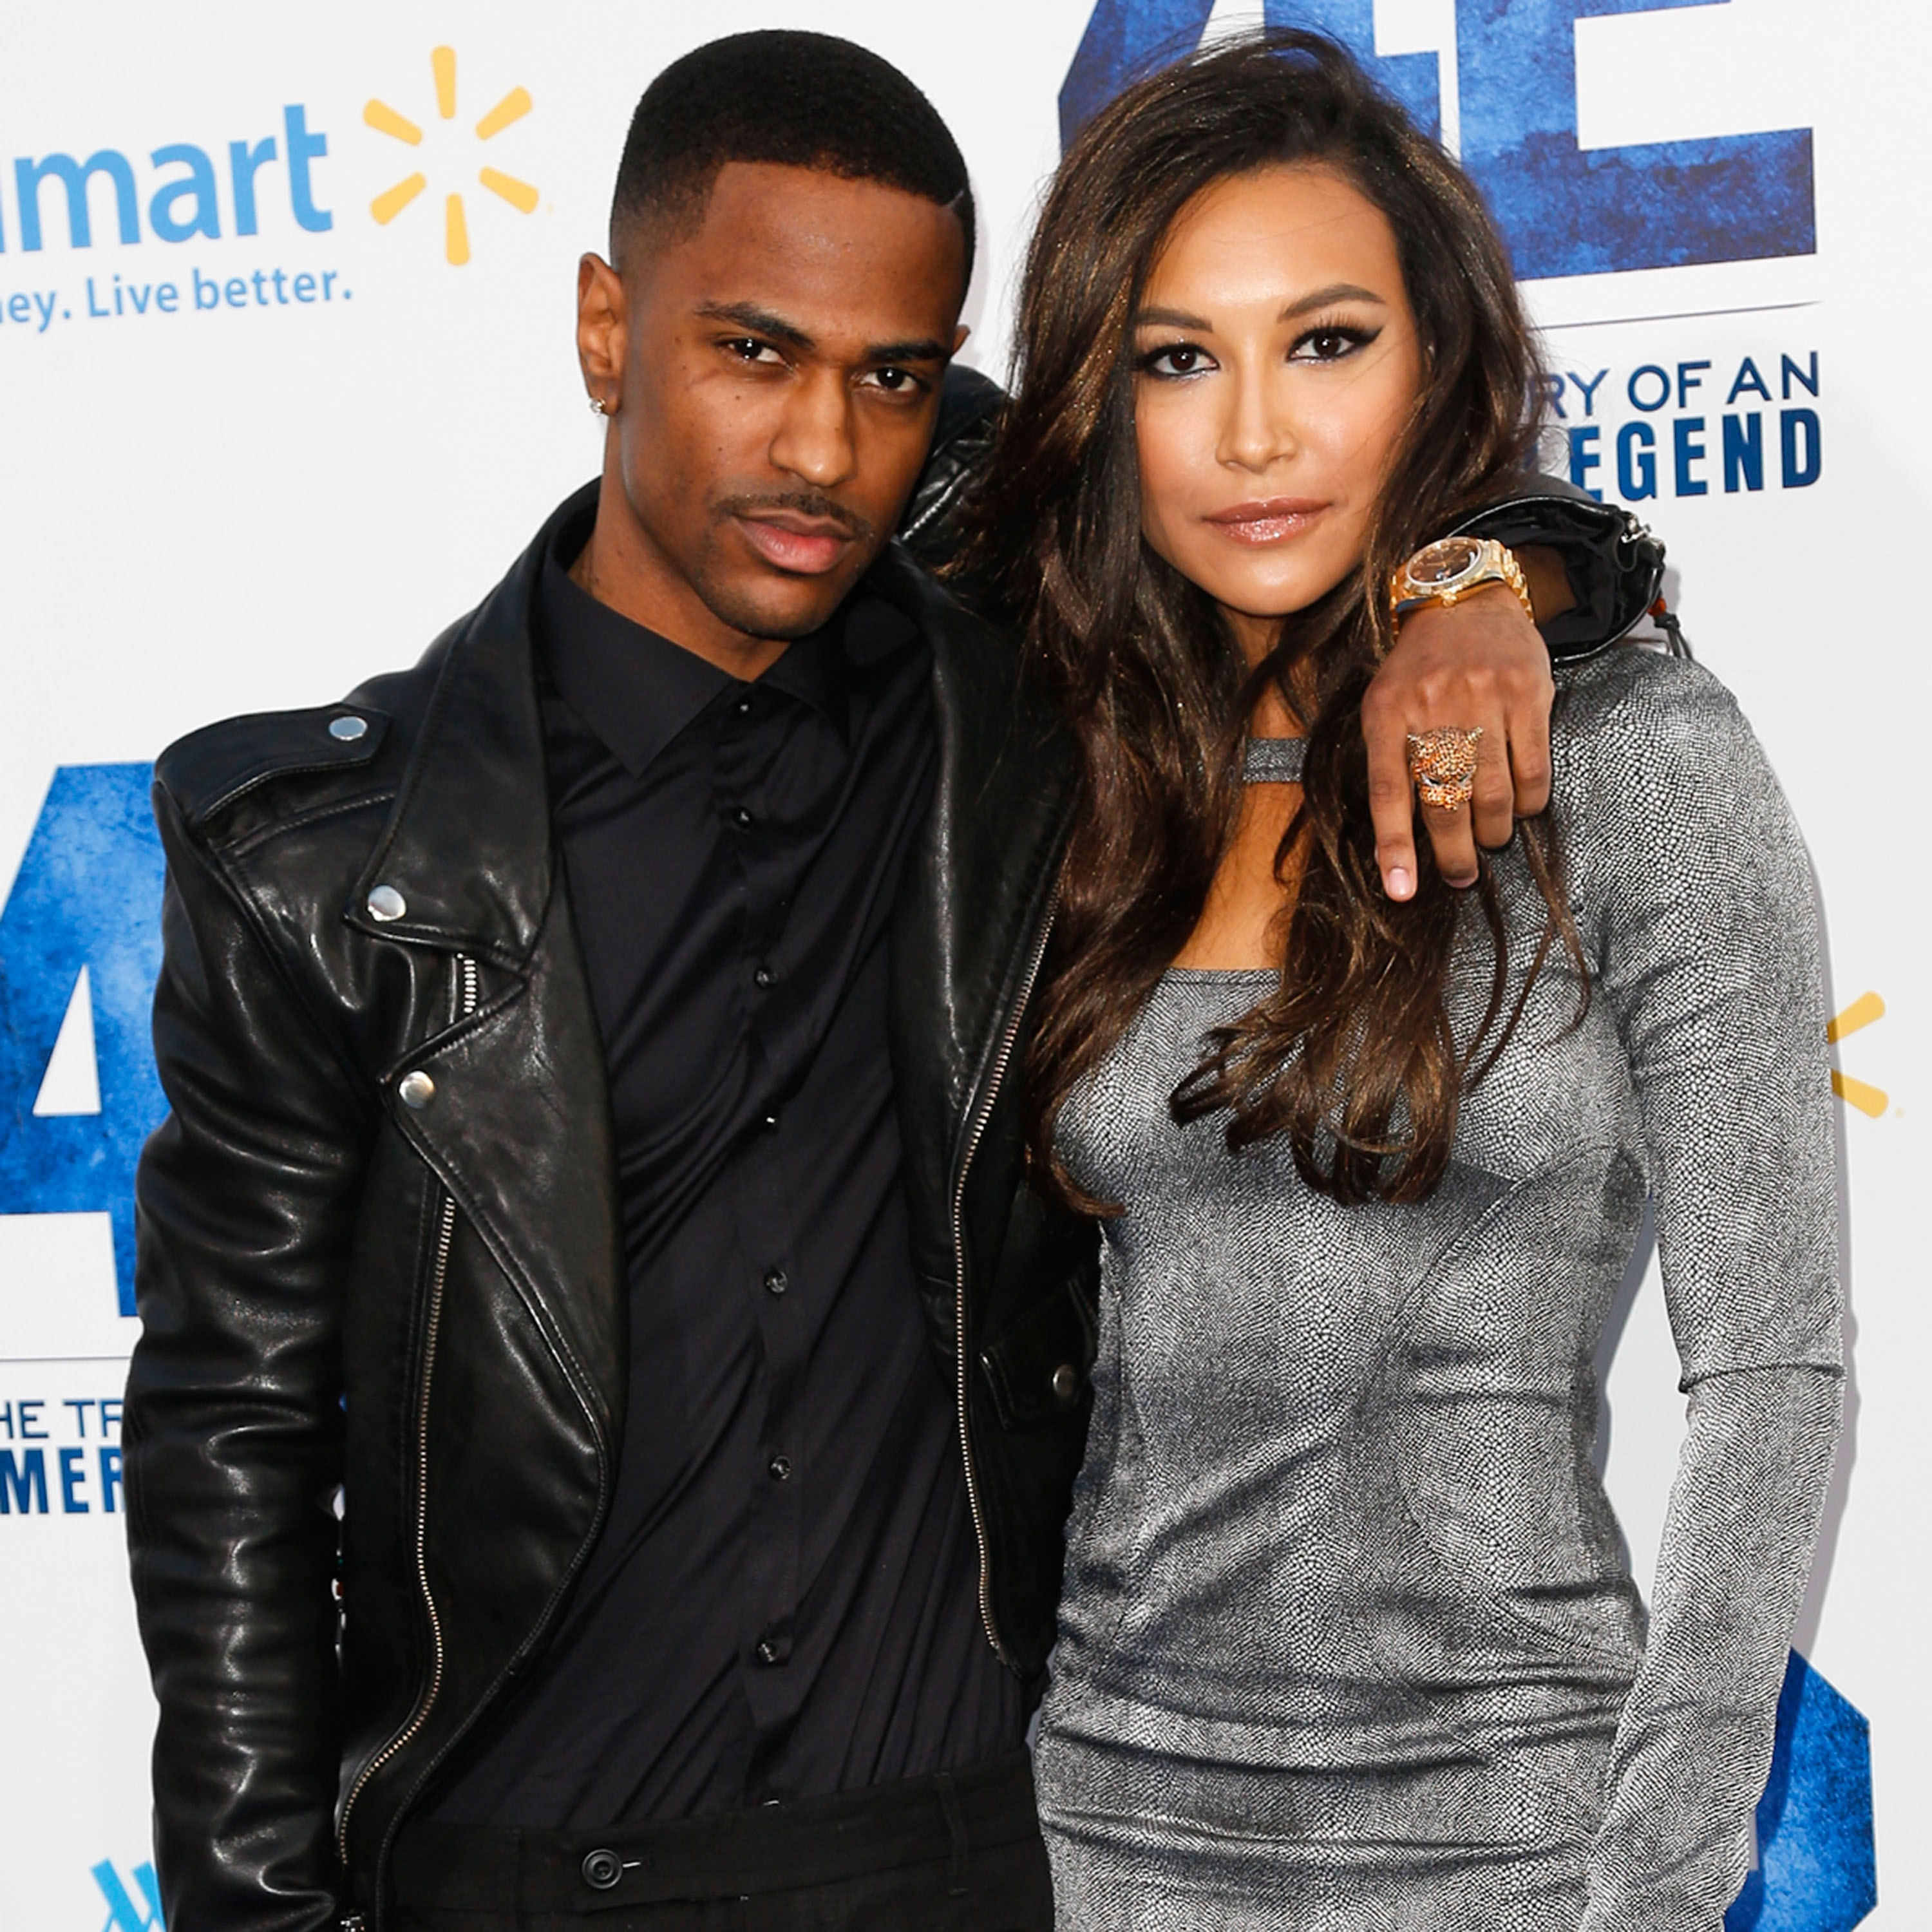 Big Sean and Naya Rivera, pictured at a Hollywood premiere in 2013, have ended their engagement.